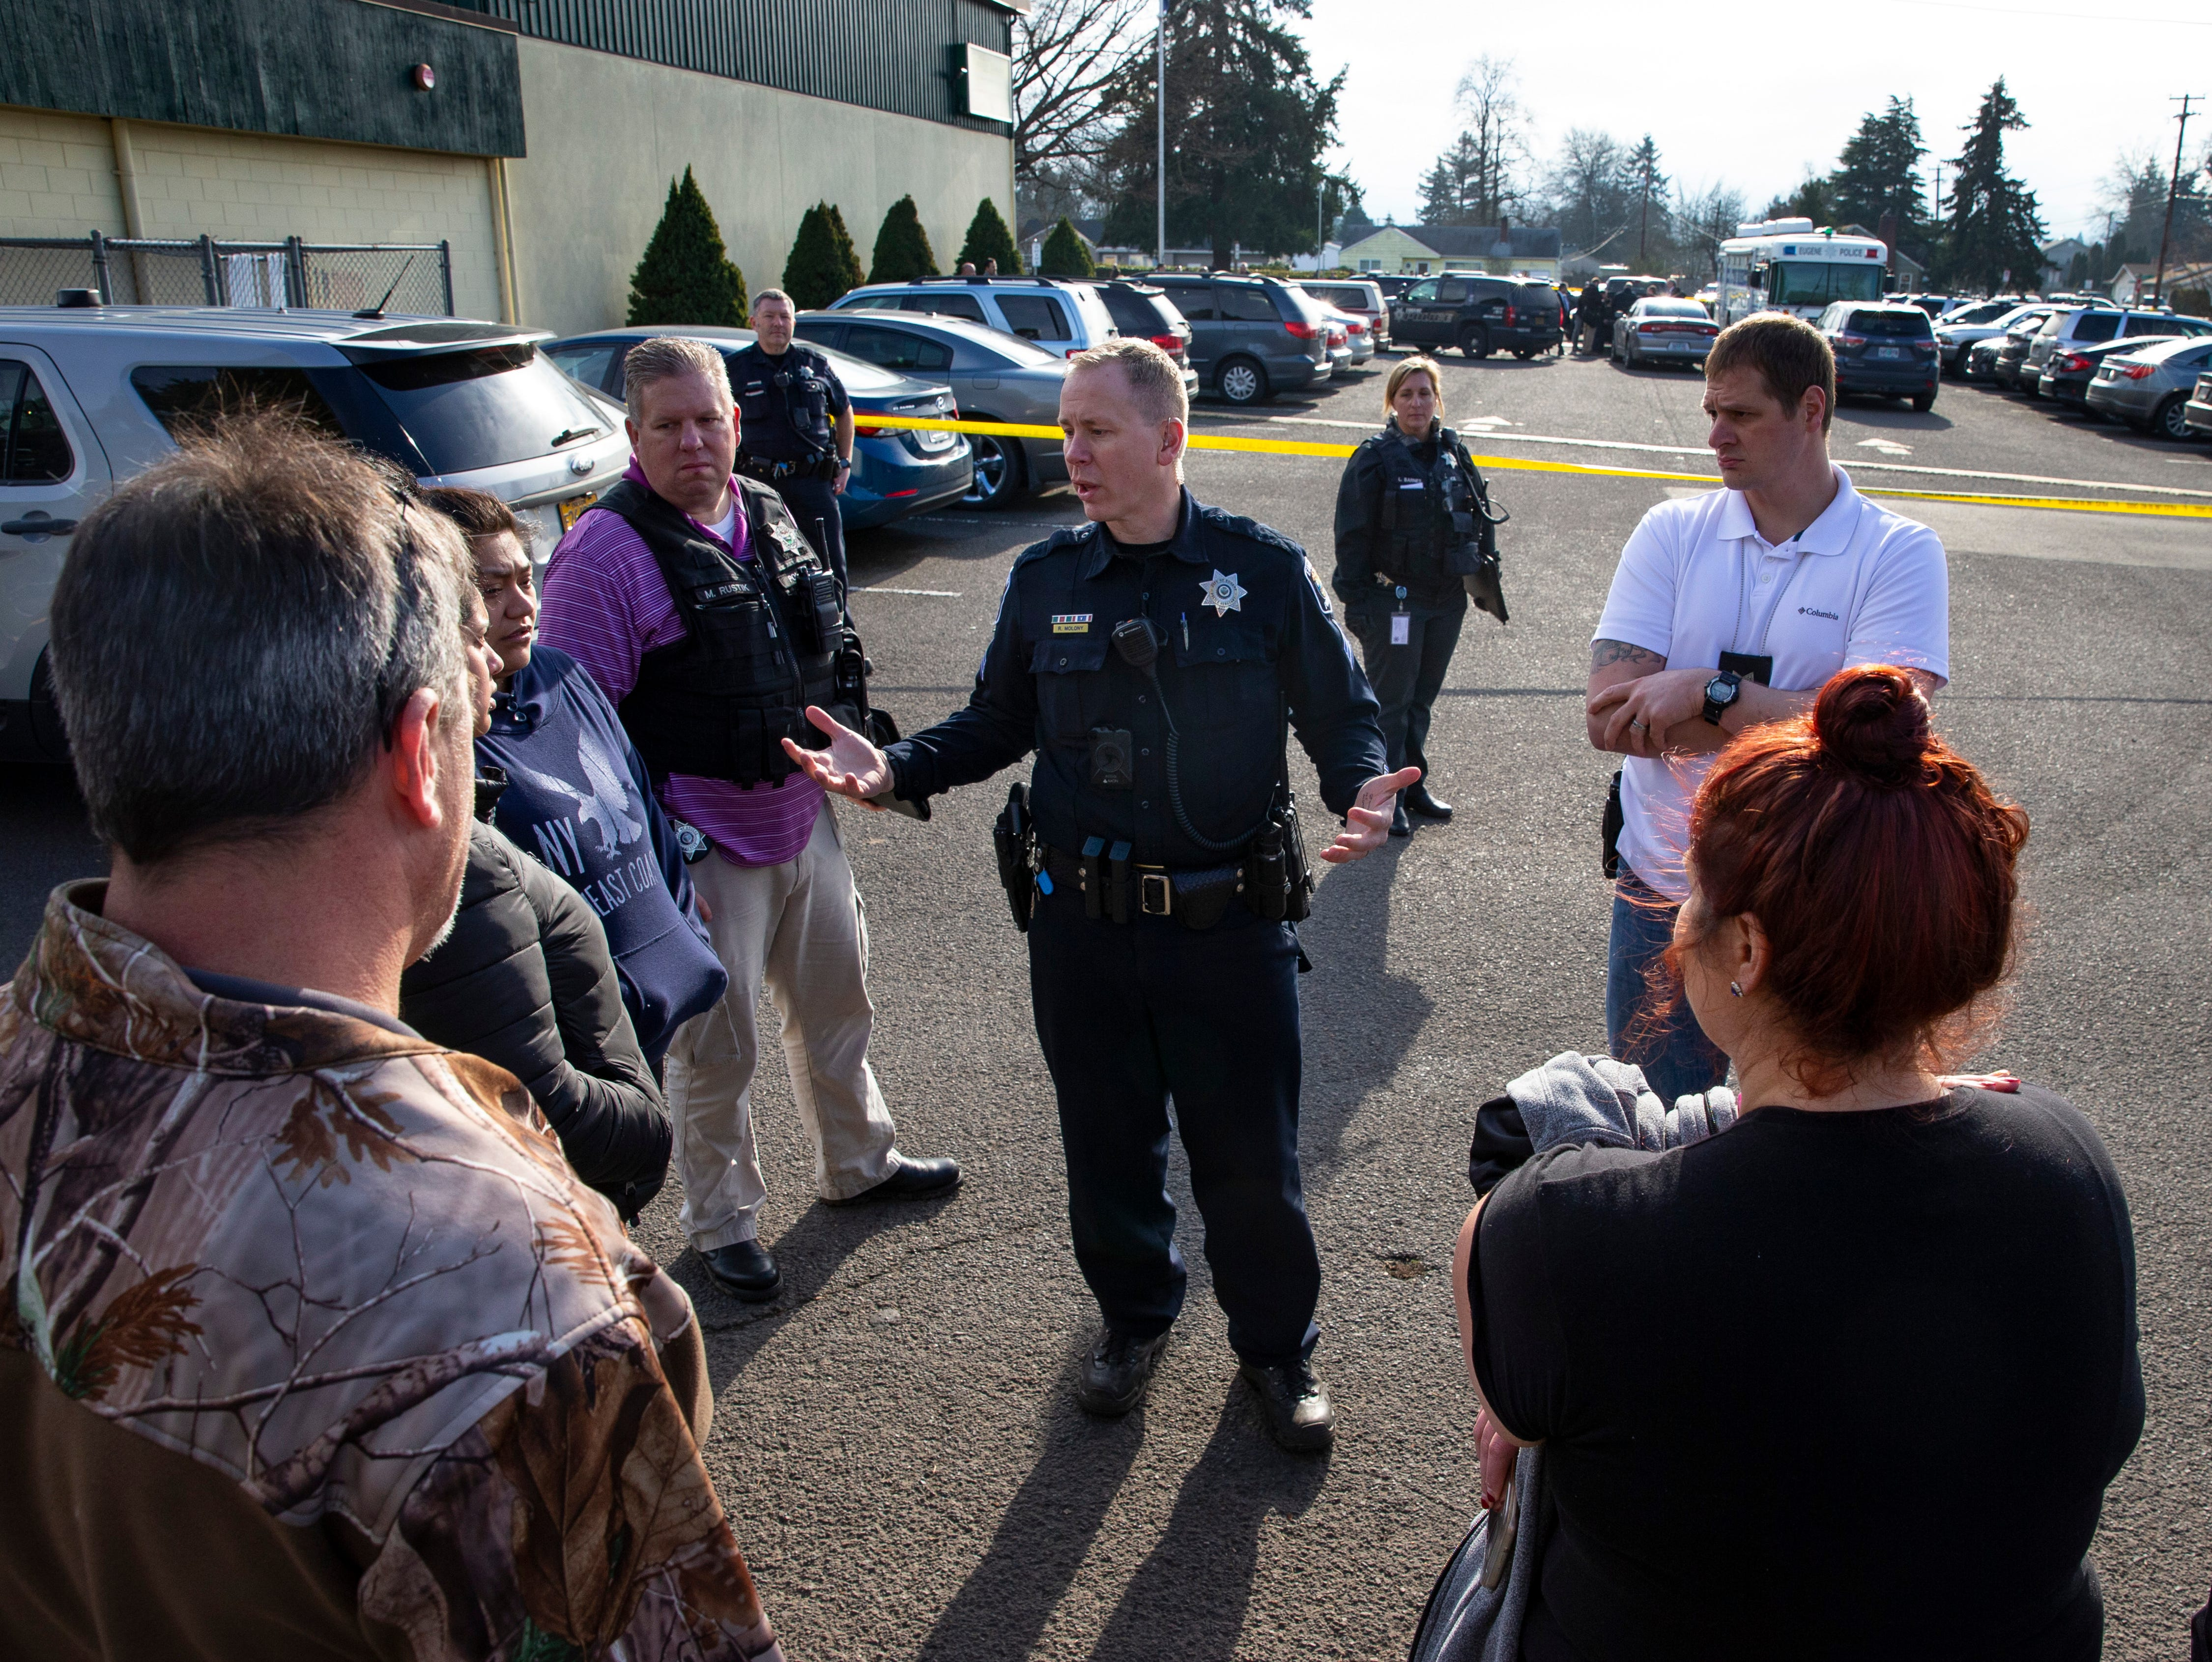 Eugene Police Sgt. Ryan Molony, center, talks to parents outside Cascade Middle School in Eugene, Ore. after a shooting, Friday Jan. 11, 2019.